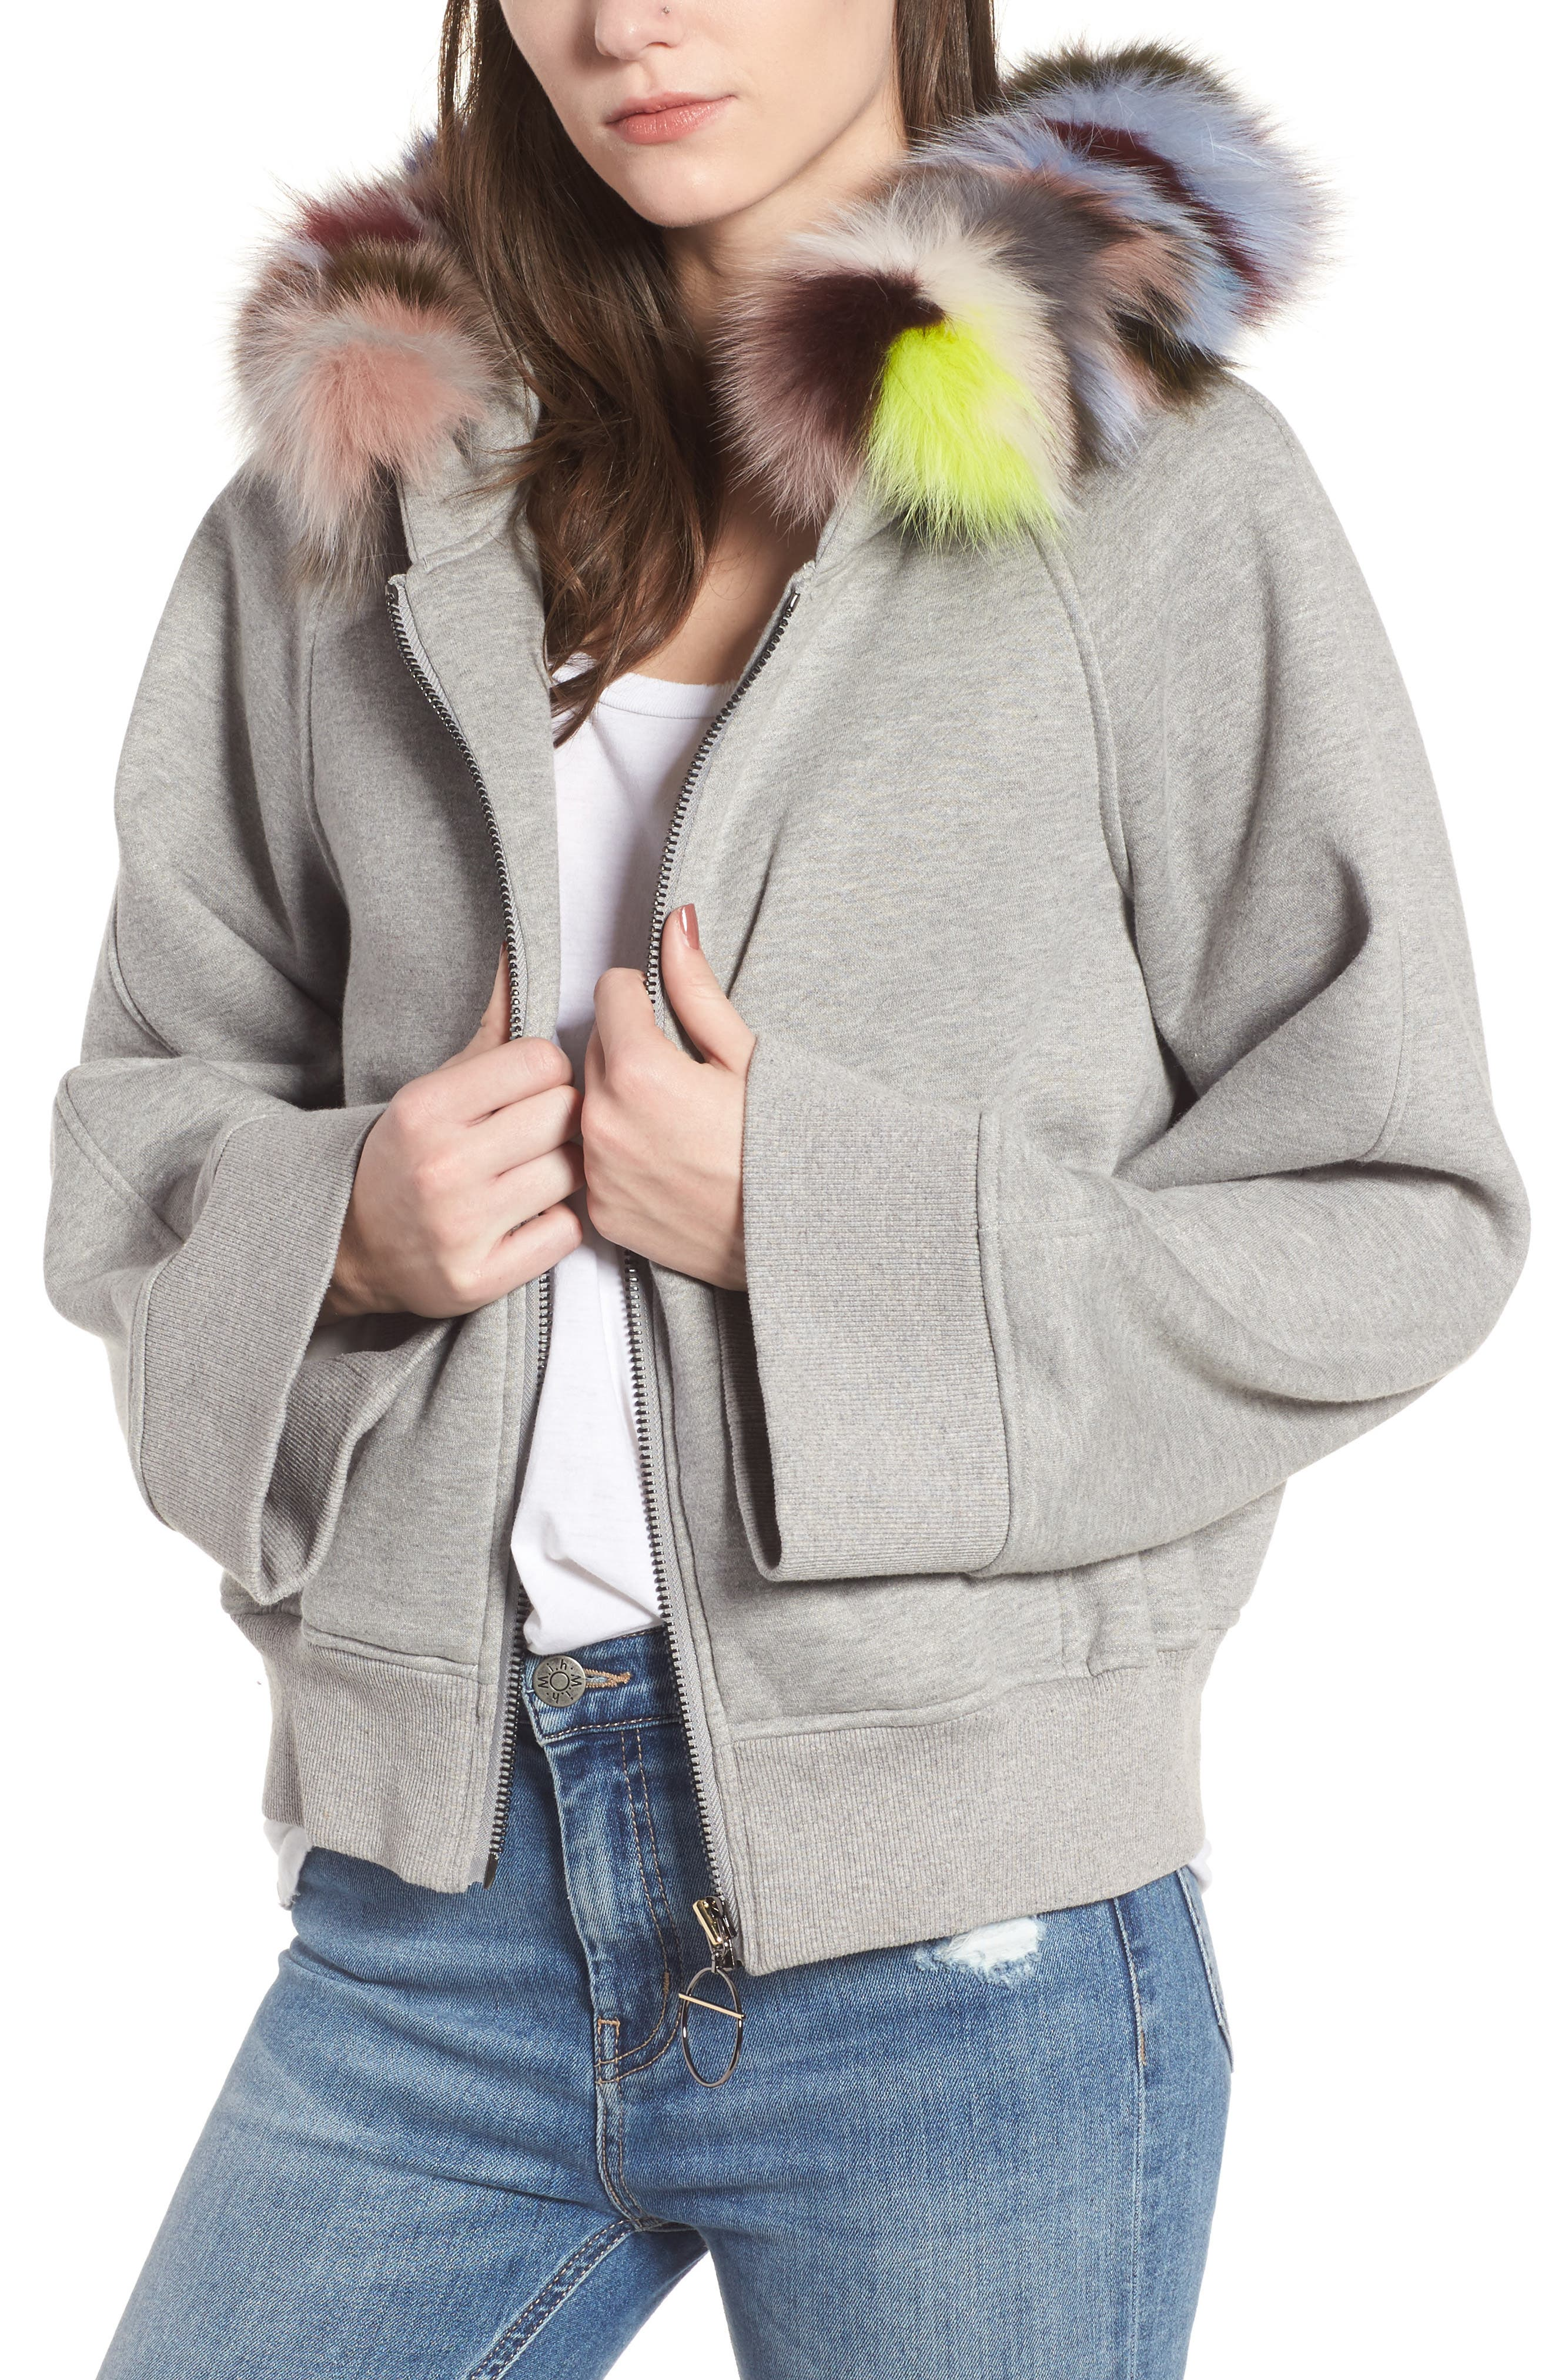 BAGATELLE.CITY The Luxe Hooded Jacket with Genuine Fox Fur Trim,                             Main thumbnail 1, color,